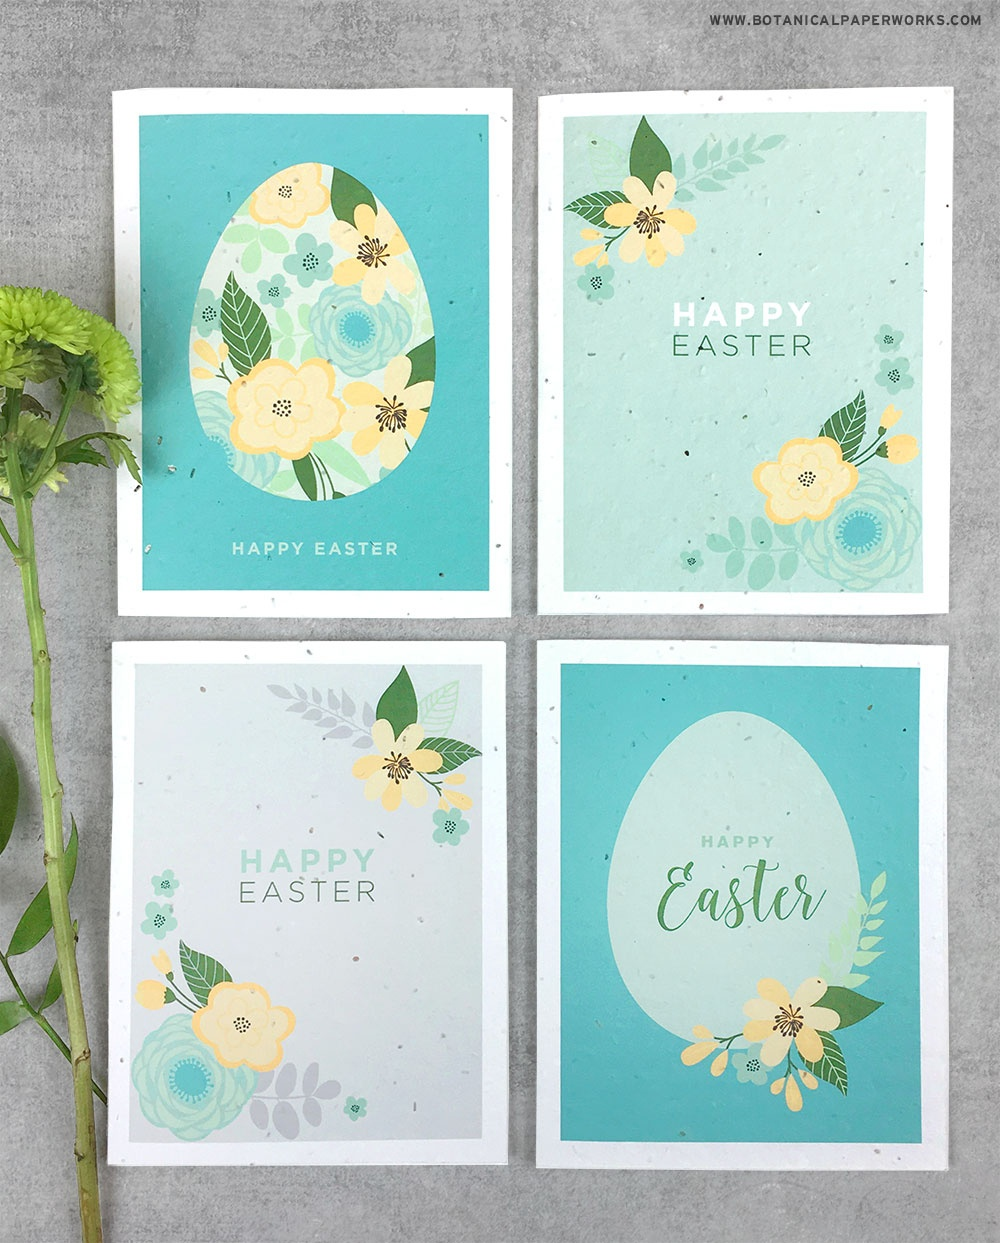 Free Printable} Easter Cards | Blog | Botanical Paperworks - Free Printable Picture Cards